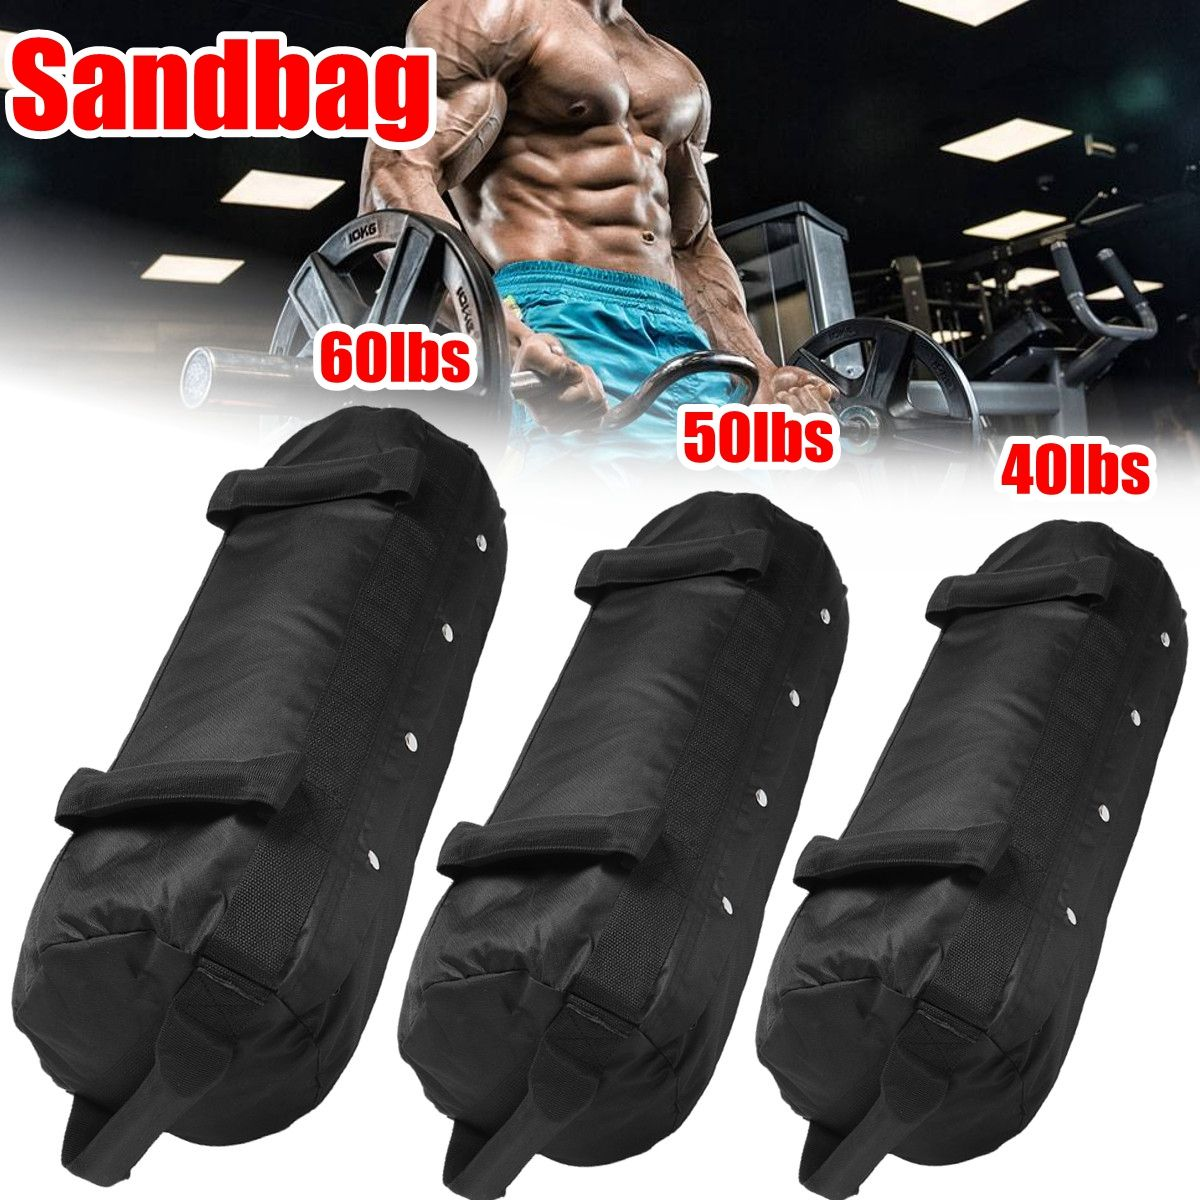 Weight Bags Weightlifting Sandbag Heavy Duty Sand Bag MMA Boxing Crossfit Military Power Training Body Shaper Fitness Equipment